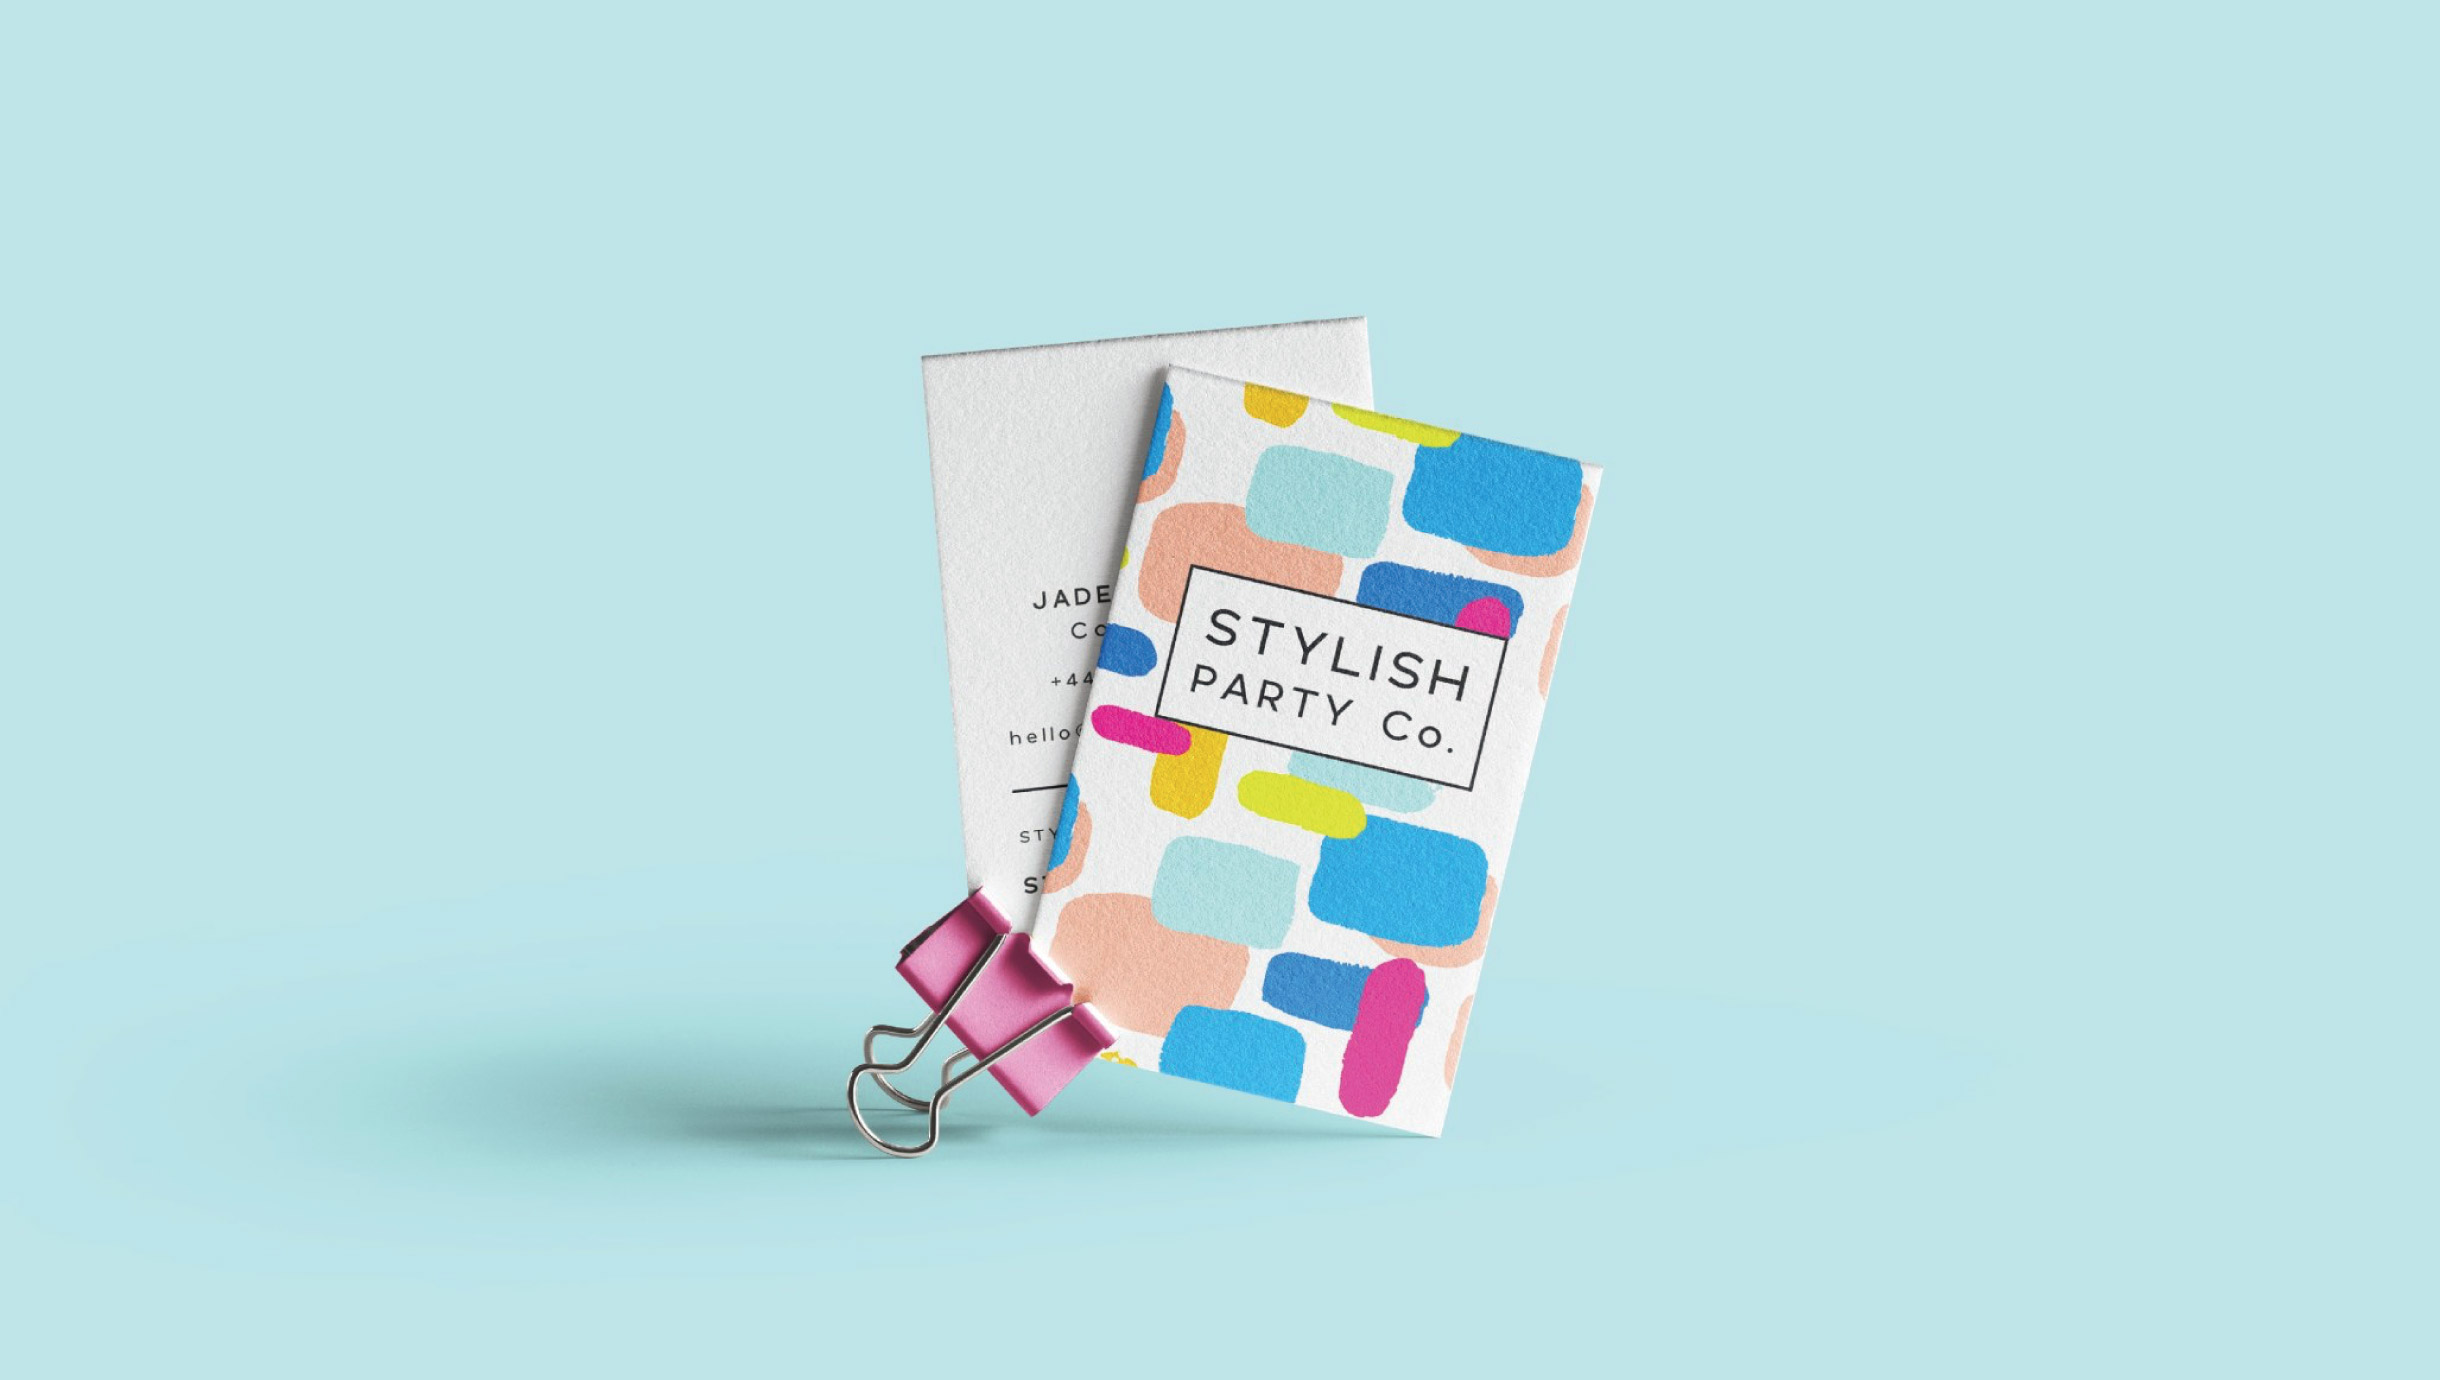 Quints Design co - Stylish Party co Branded Business Cards